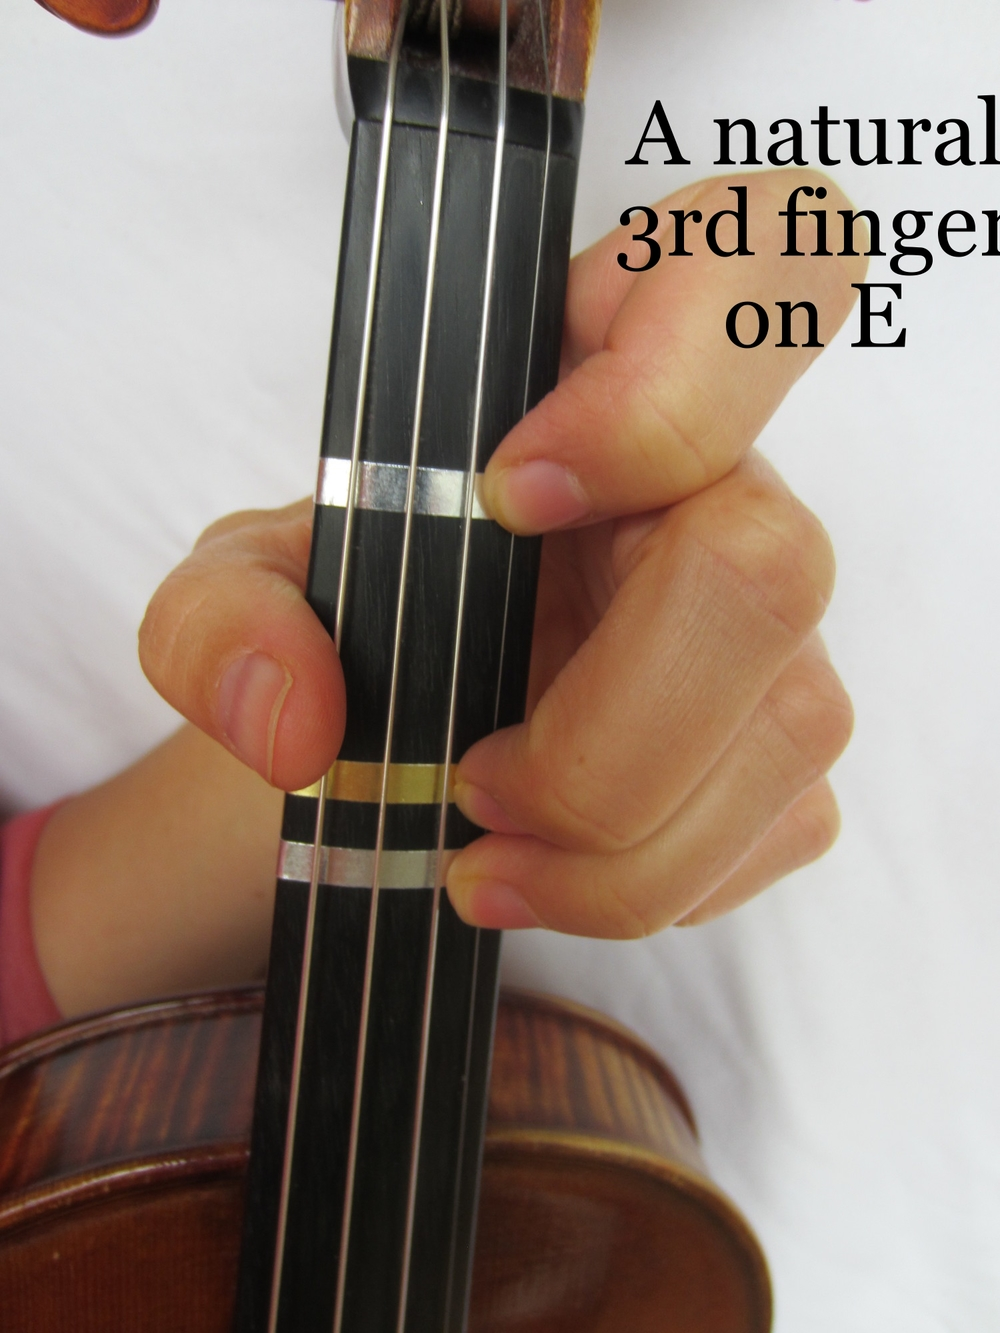 Violin Fingering A on E.JPG